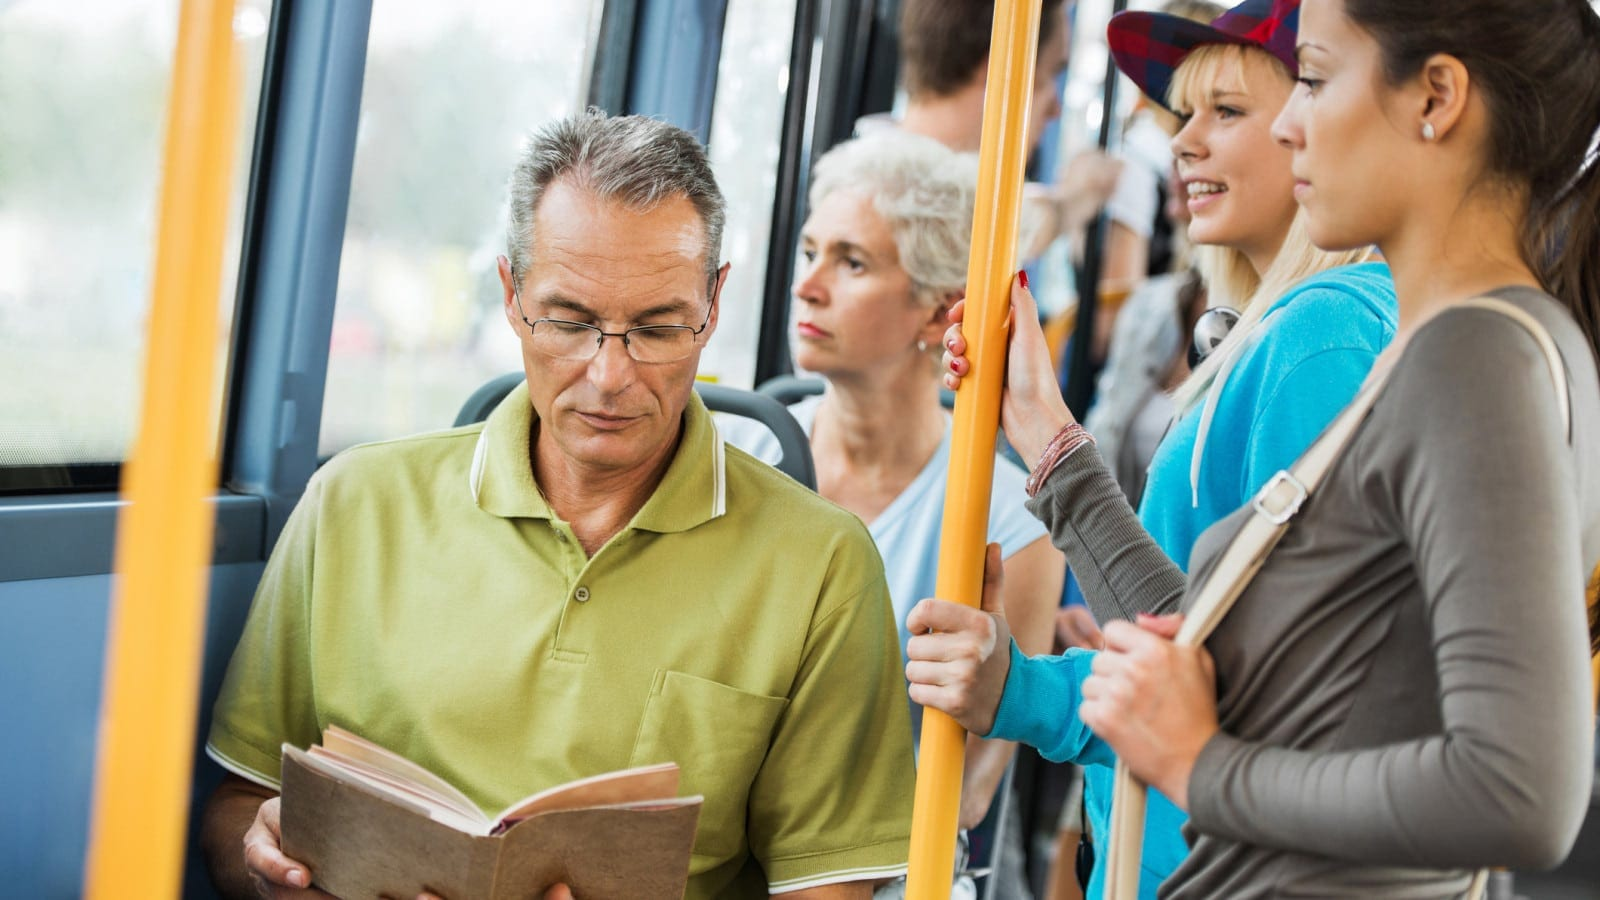 Man Riding Public Transit Stock Photo